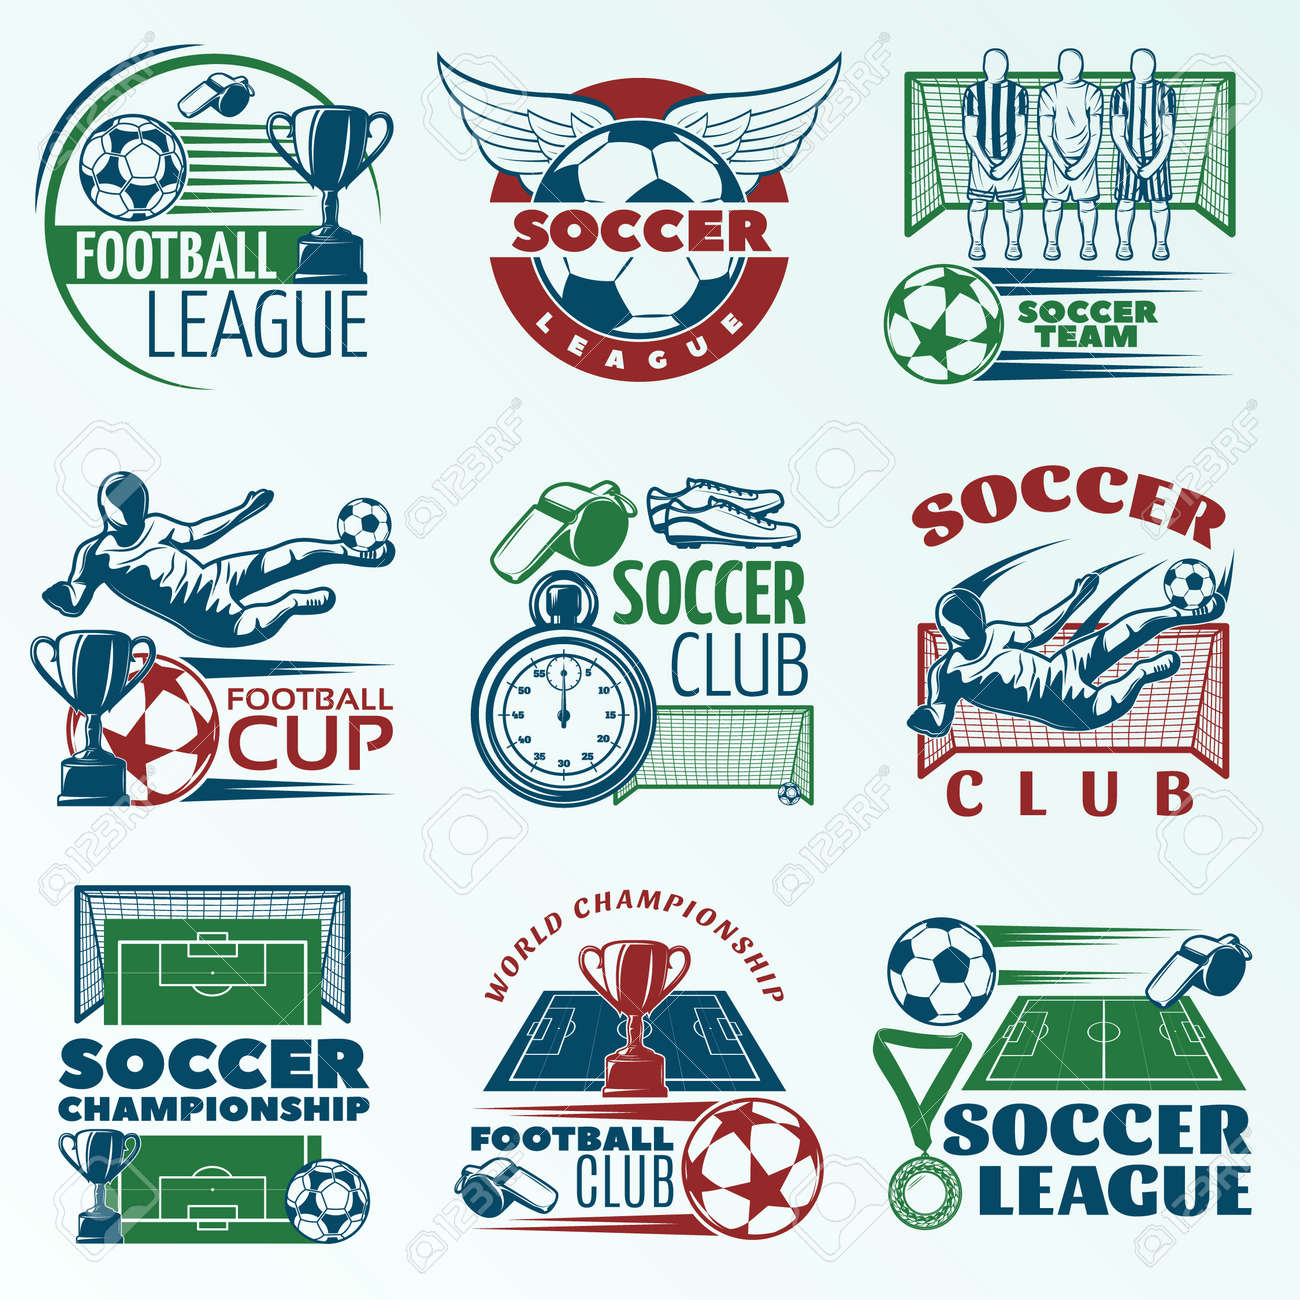 Soccer colored emblems with players sports equipment trophies referees objects on pale blue background isolated vector illustration - 166642430